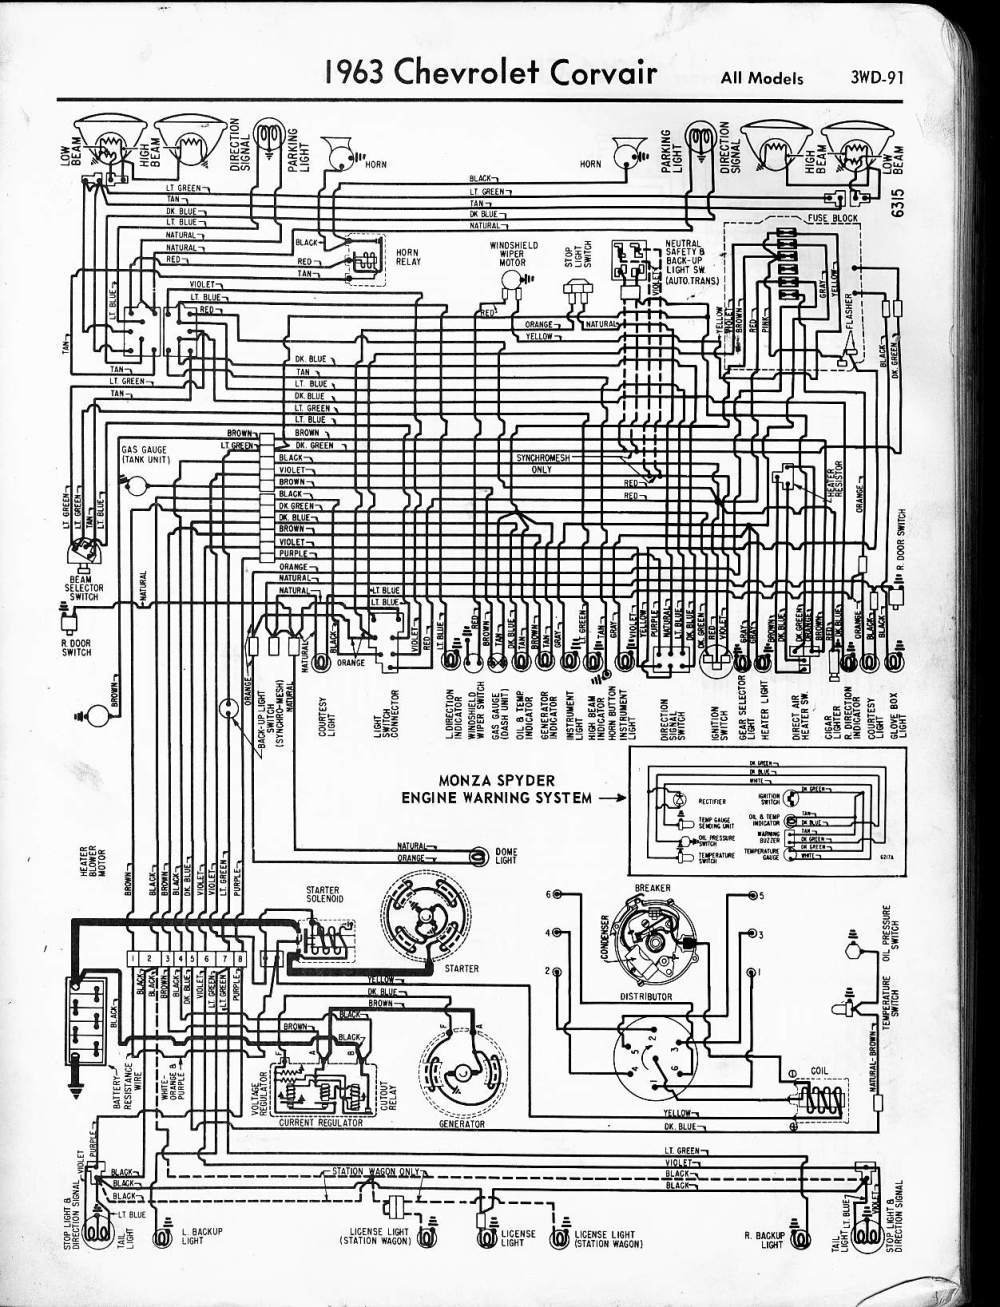 medium resolution of 1965 chevrolet impala wiring diagram wiring diagram third level rh 15 18 16 jacobwinterstein com 1967 impala dash wiring diagram 1967 impala wiring diagram